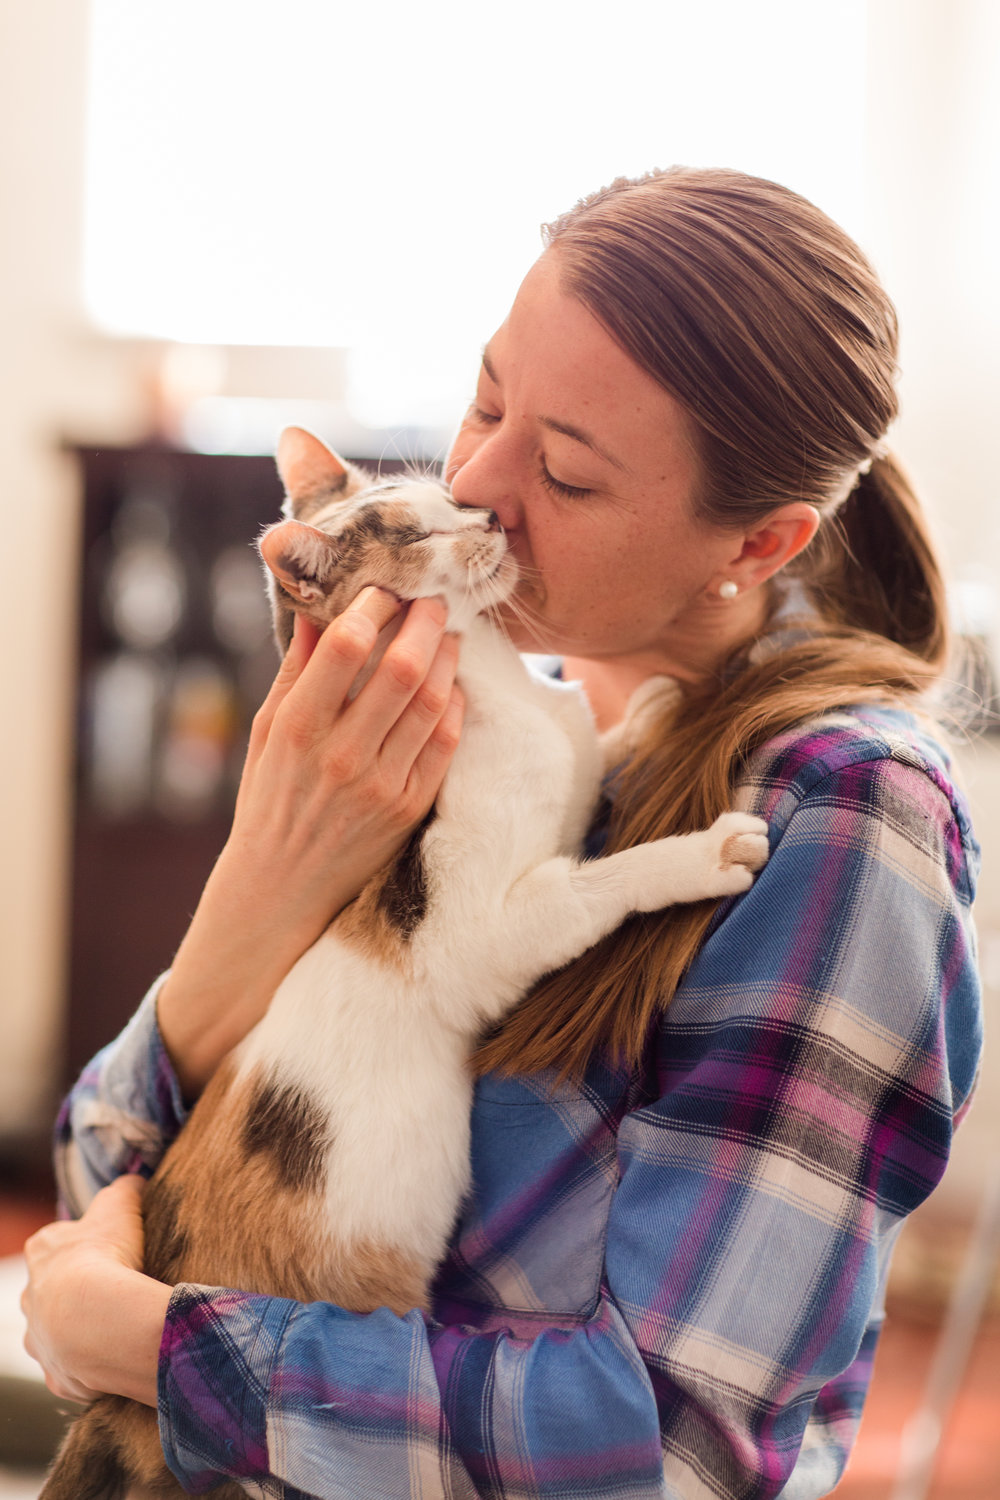 Helping pets in their homes removes stress from the shelter, the animal, and the people involved.